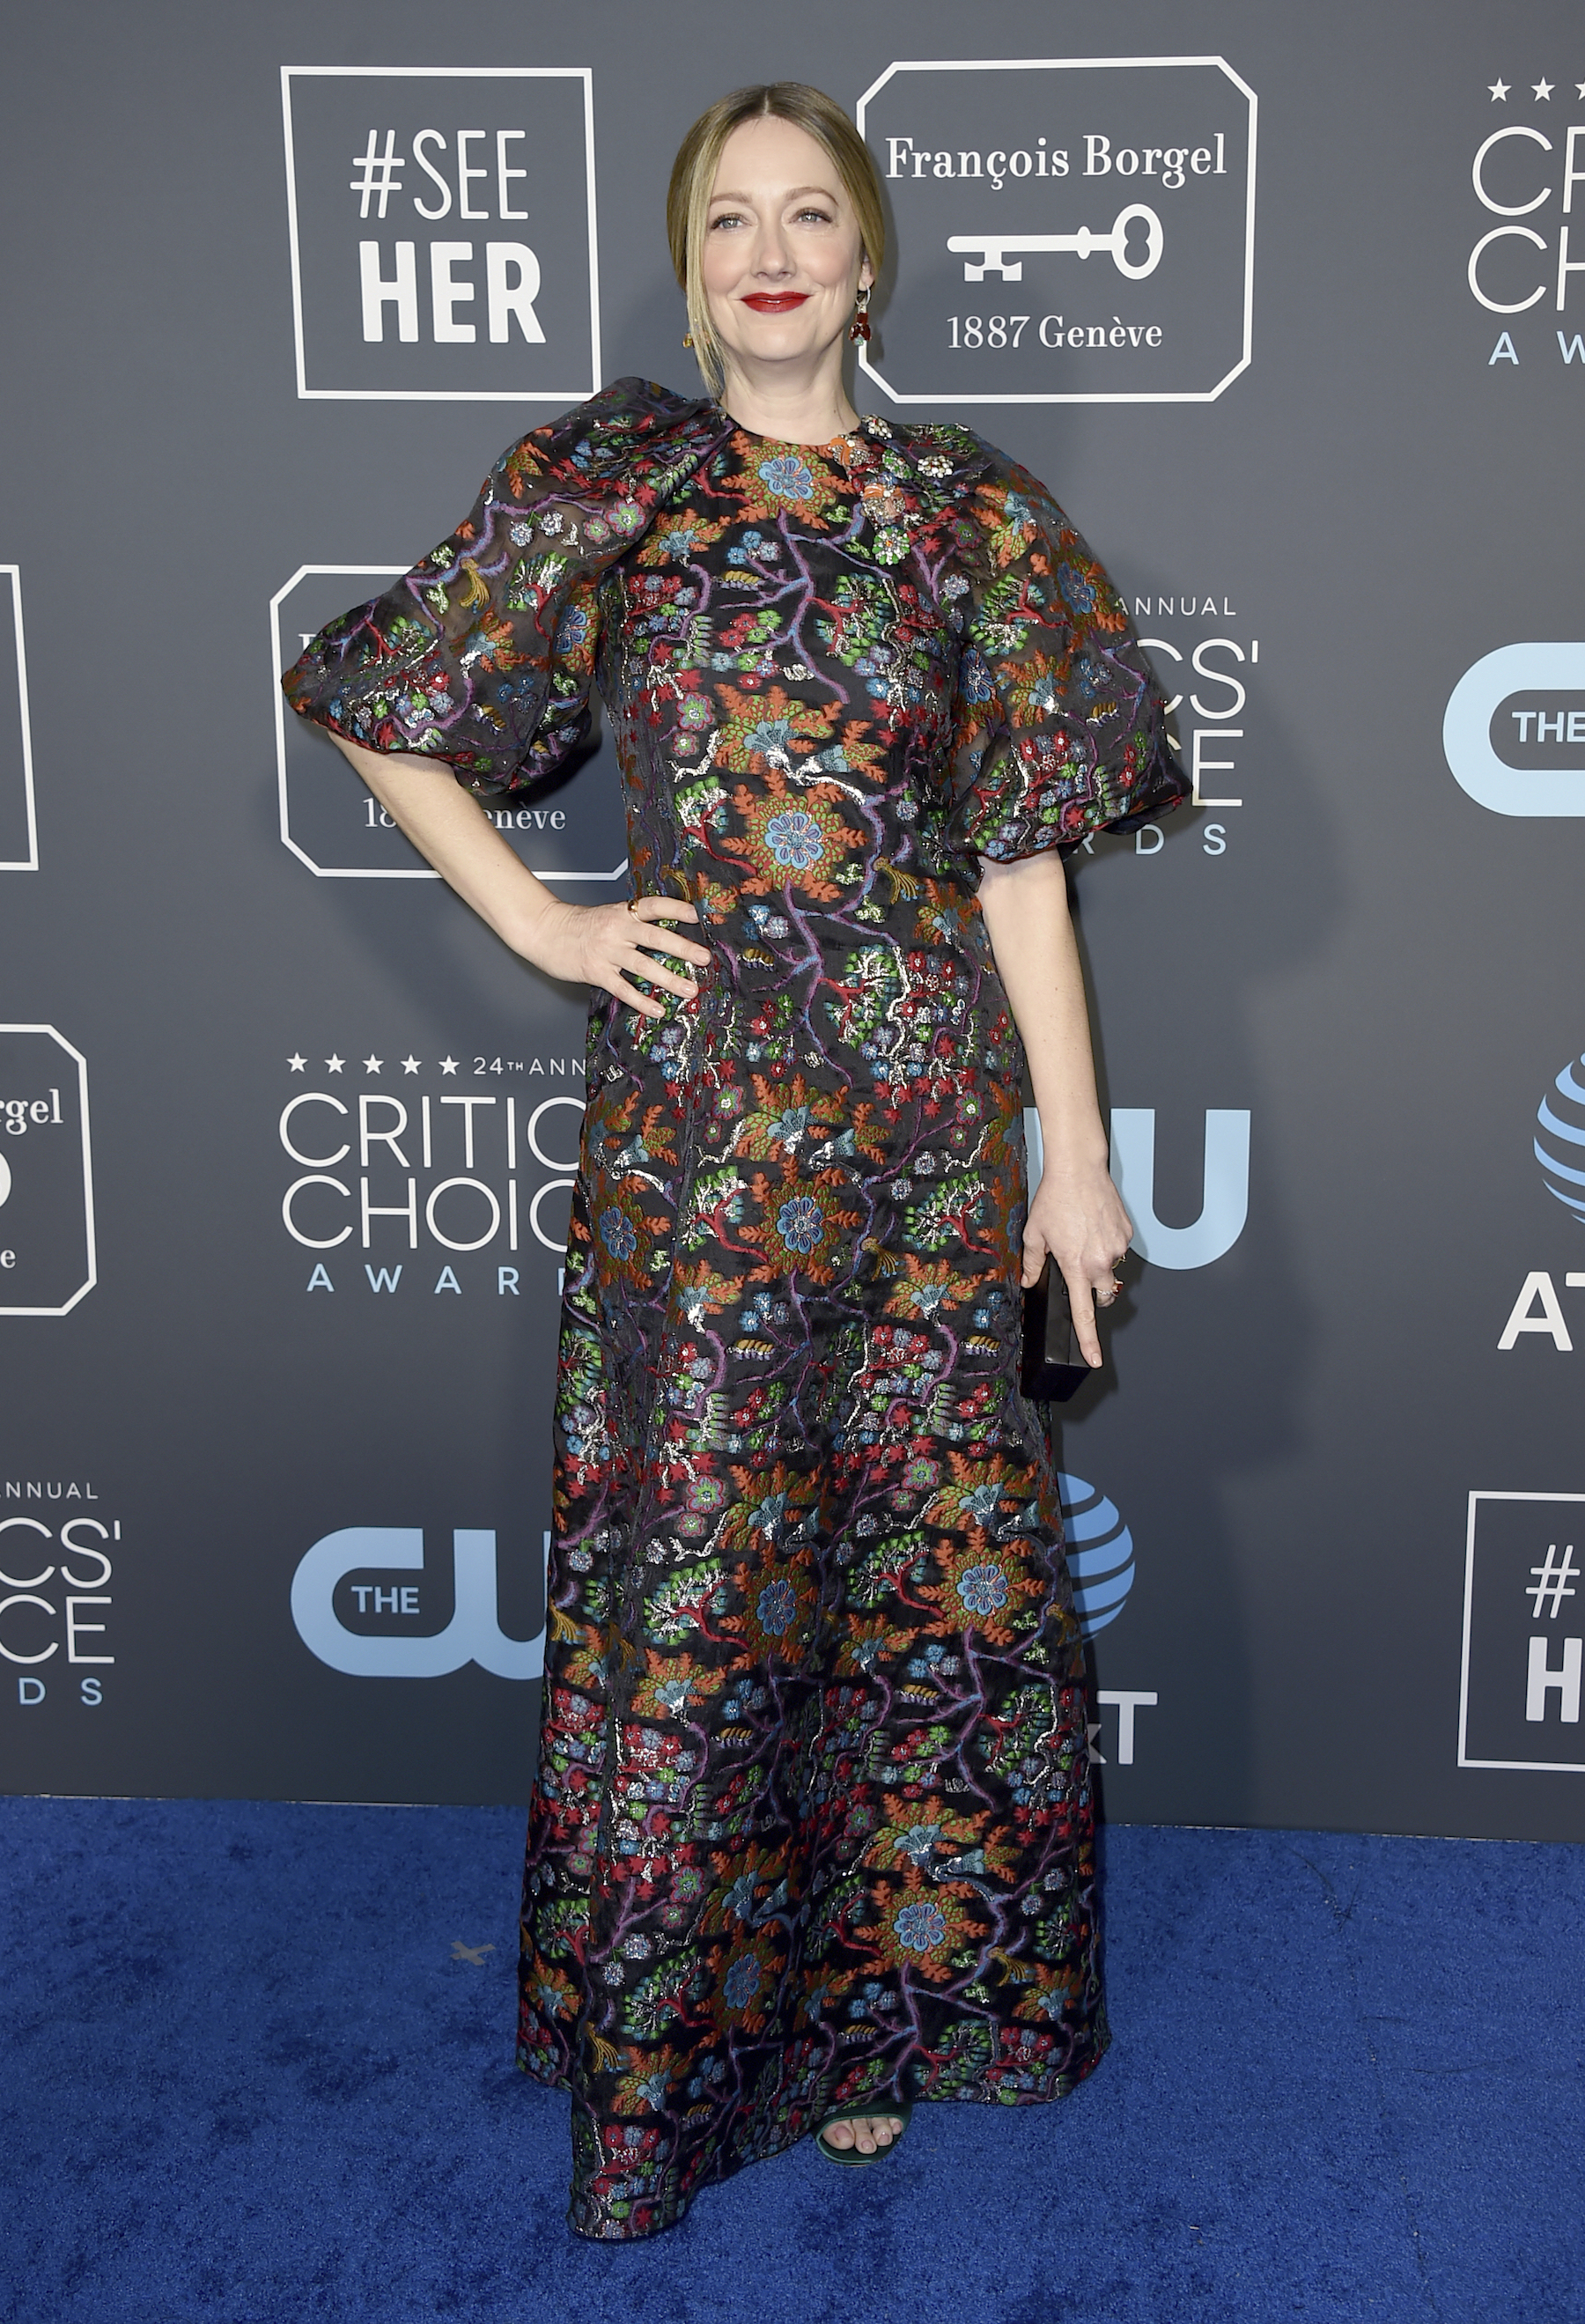 "<div class=""meta image-caption""><div class=""origin-logo origin-image ap""><span>AP</span></div><span class=""caption-text"">Judy Greer arrives at the 24th annual Critics' Choice Awards on Sunday, Jan. 13, 2019, at the Barker Hangar in Santa Monica, Calif. (Jordan Strauss/Invision/AP)</span></div>"